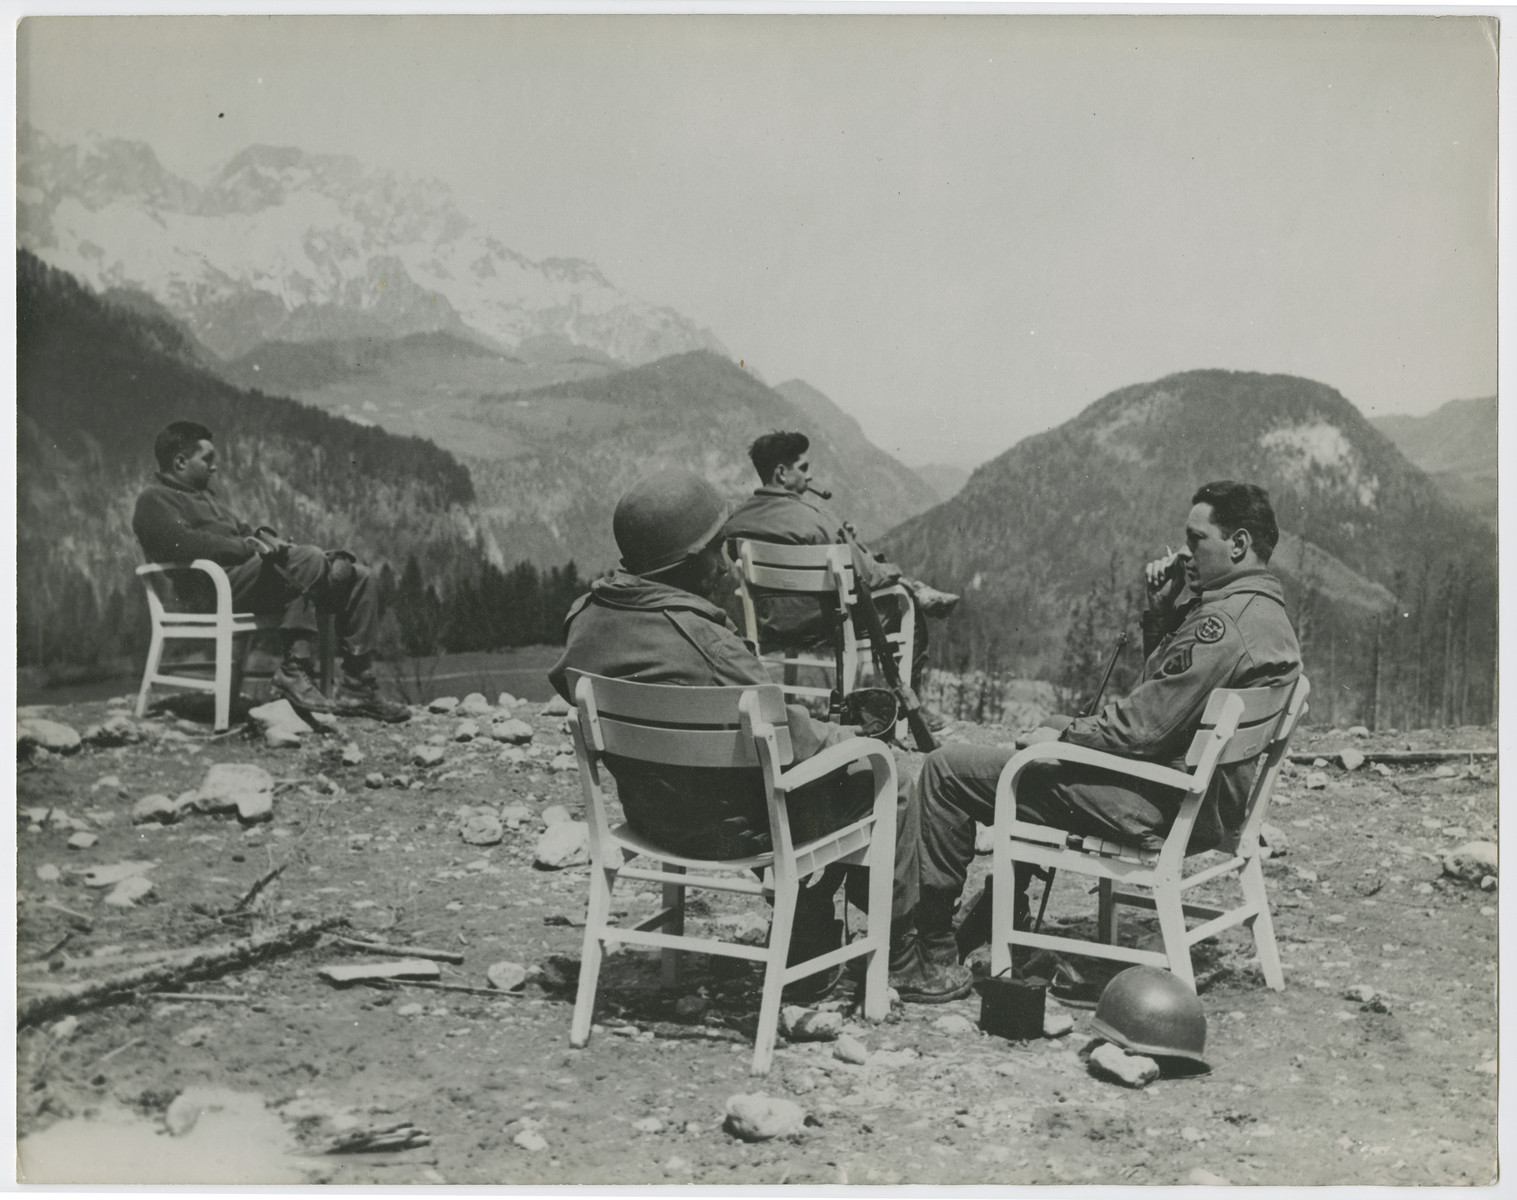 Five soliders of the Seventh U.S. Army visit the former mountain retreat of Adolf Hitler in the Berchtesgaden on the first day of peace in Europe.